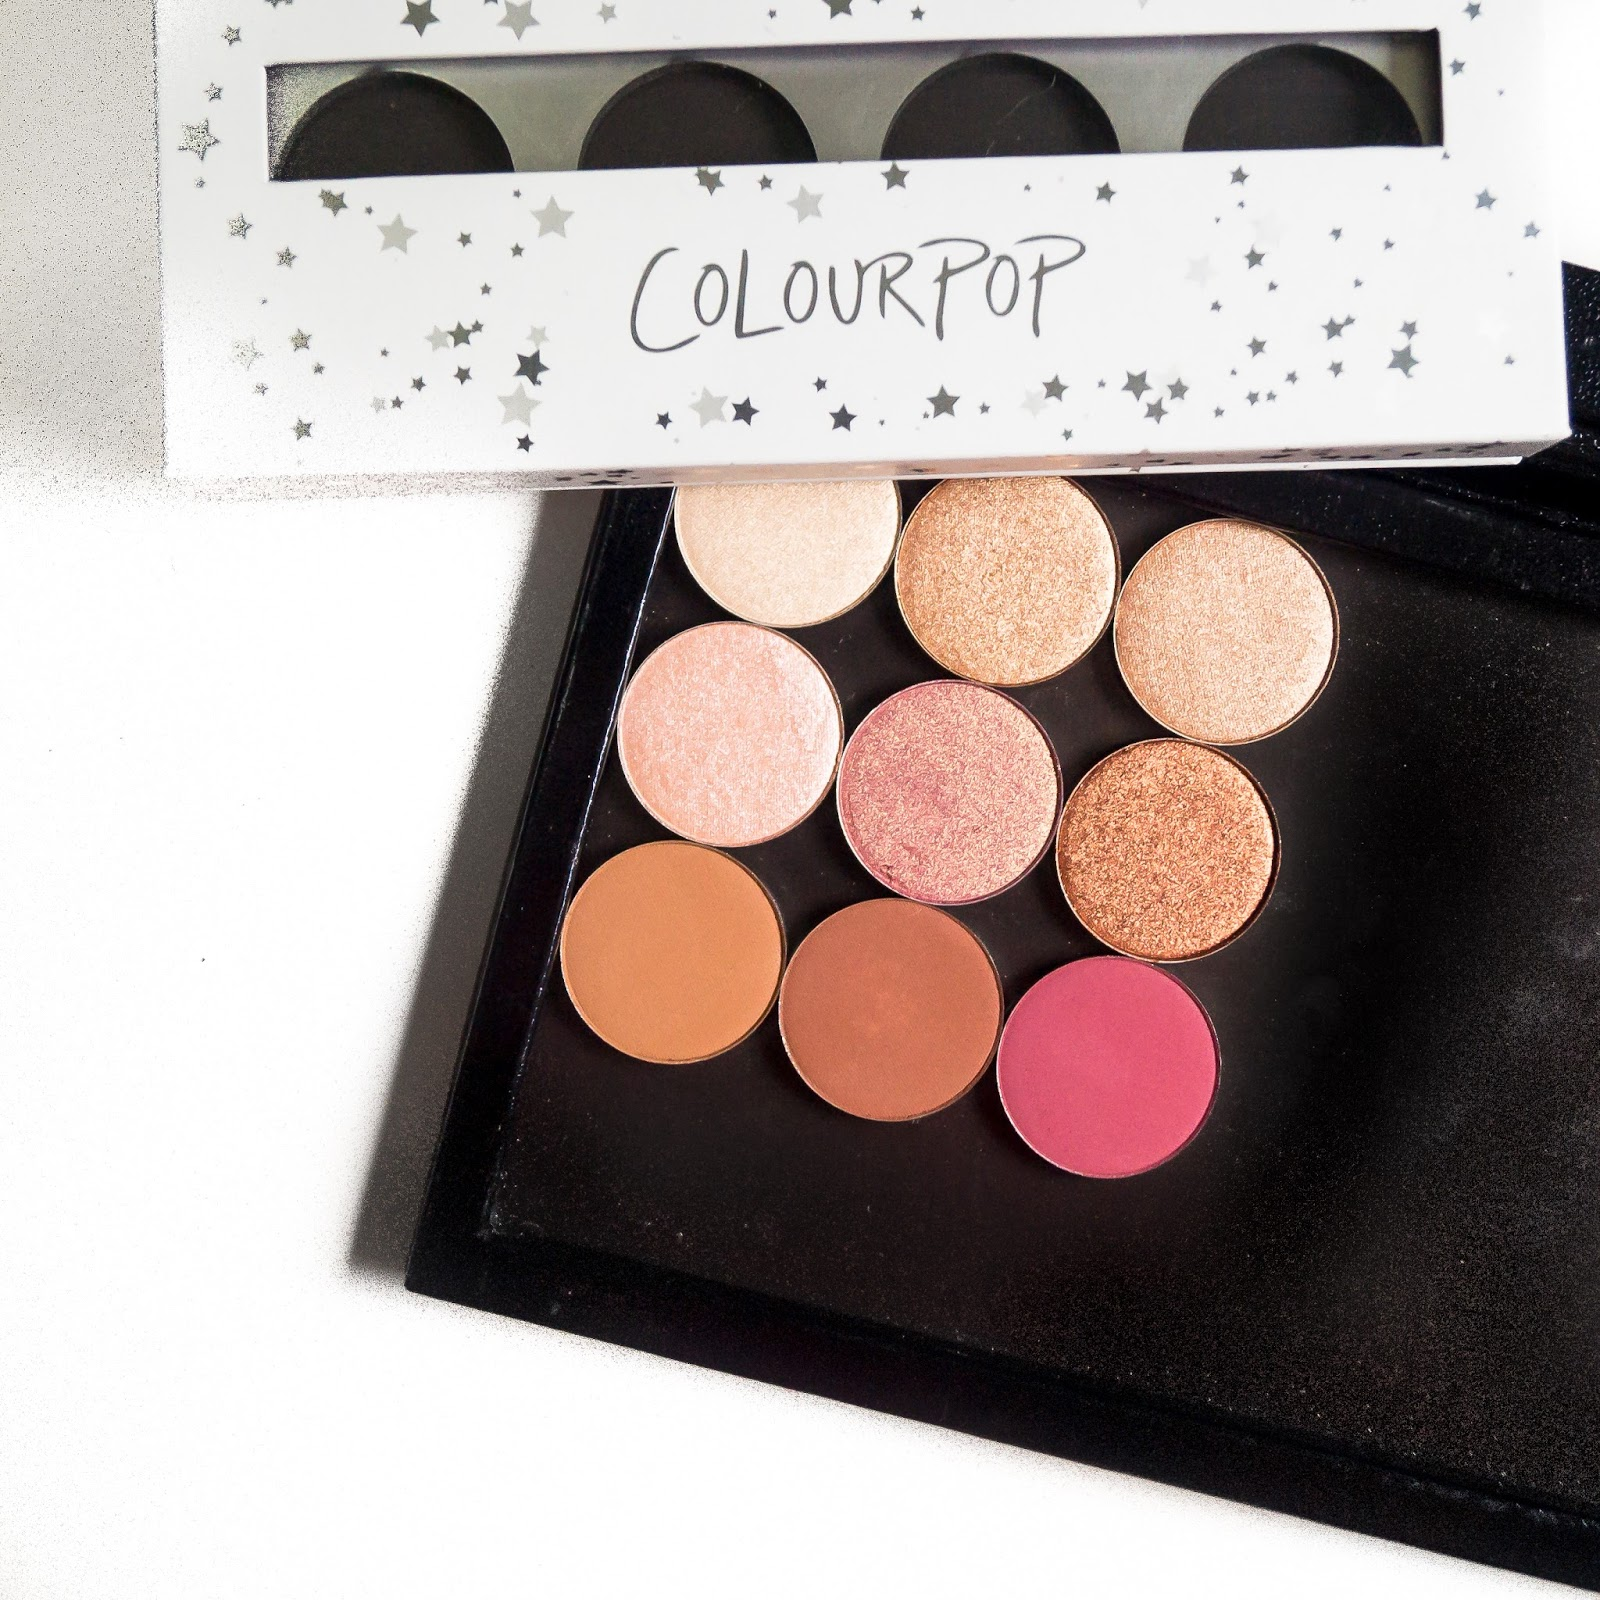 Colourpop Pressed Eyeshadow Review | Biscuits and Makeup